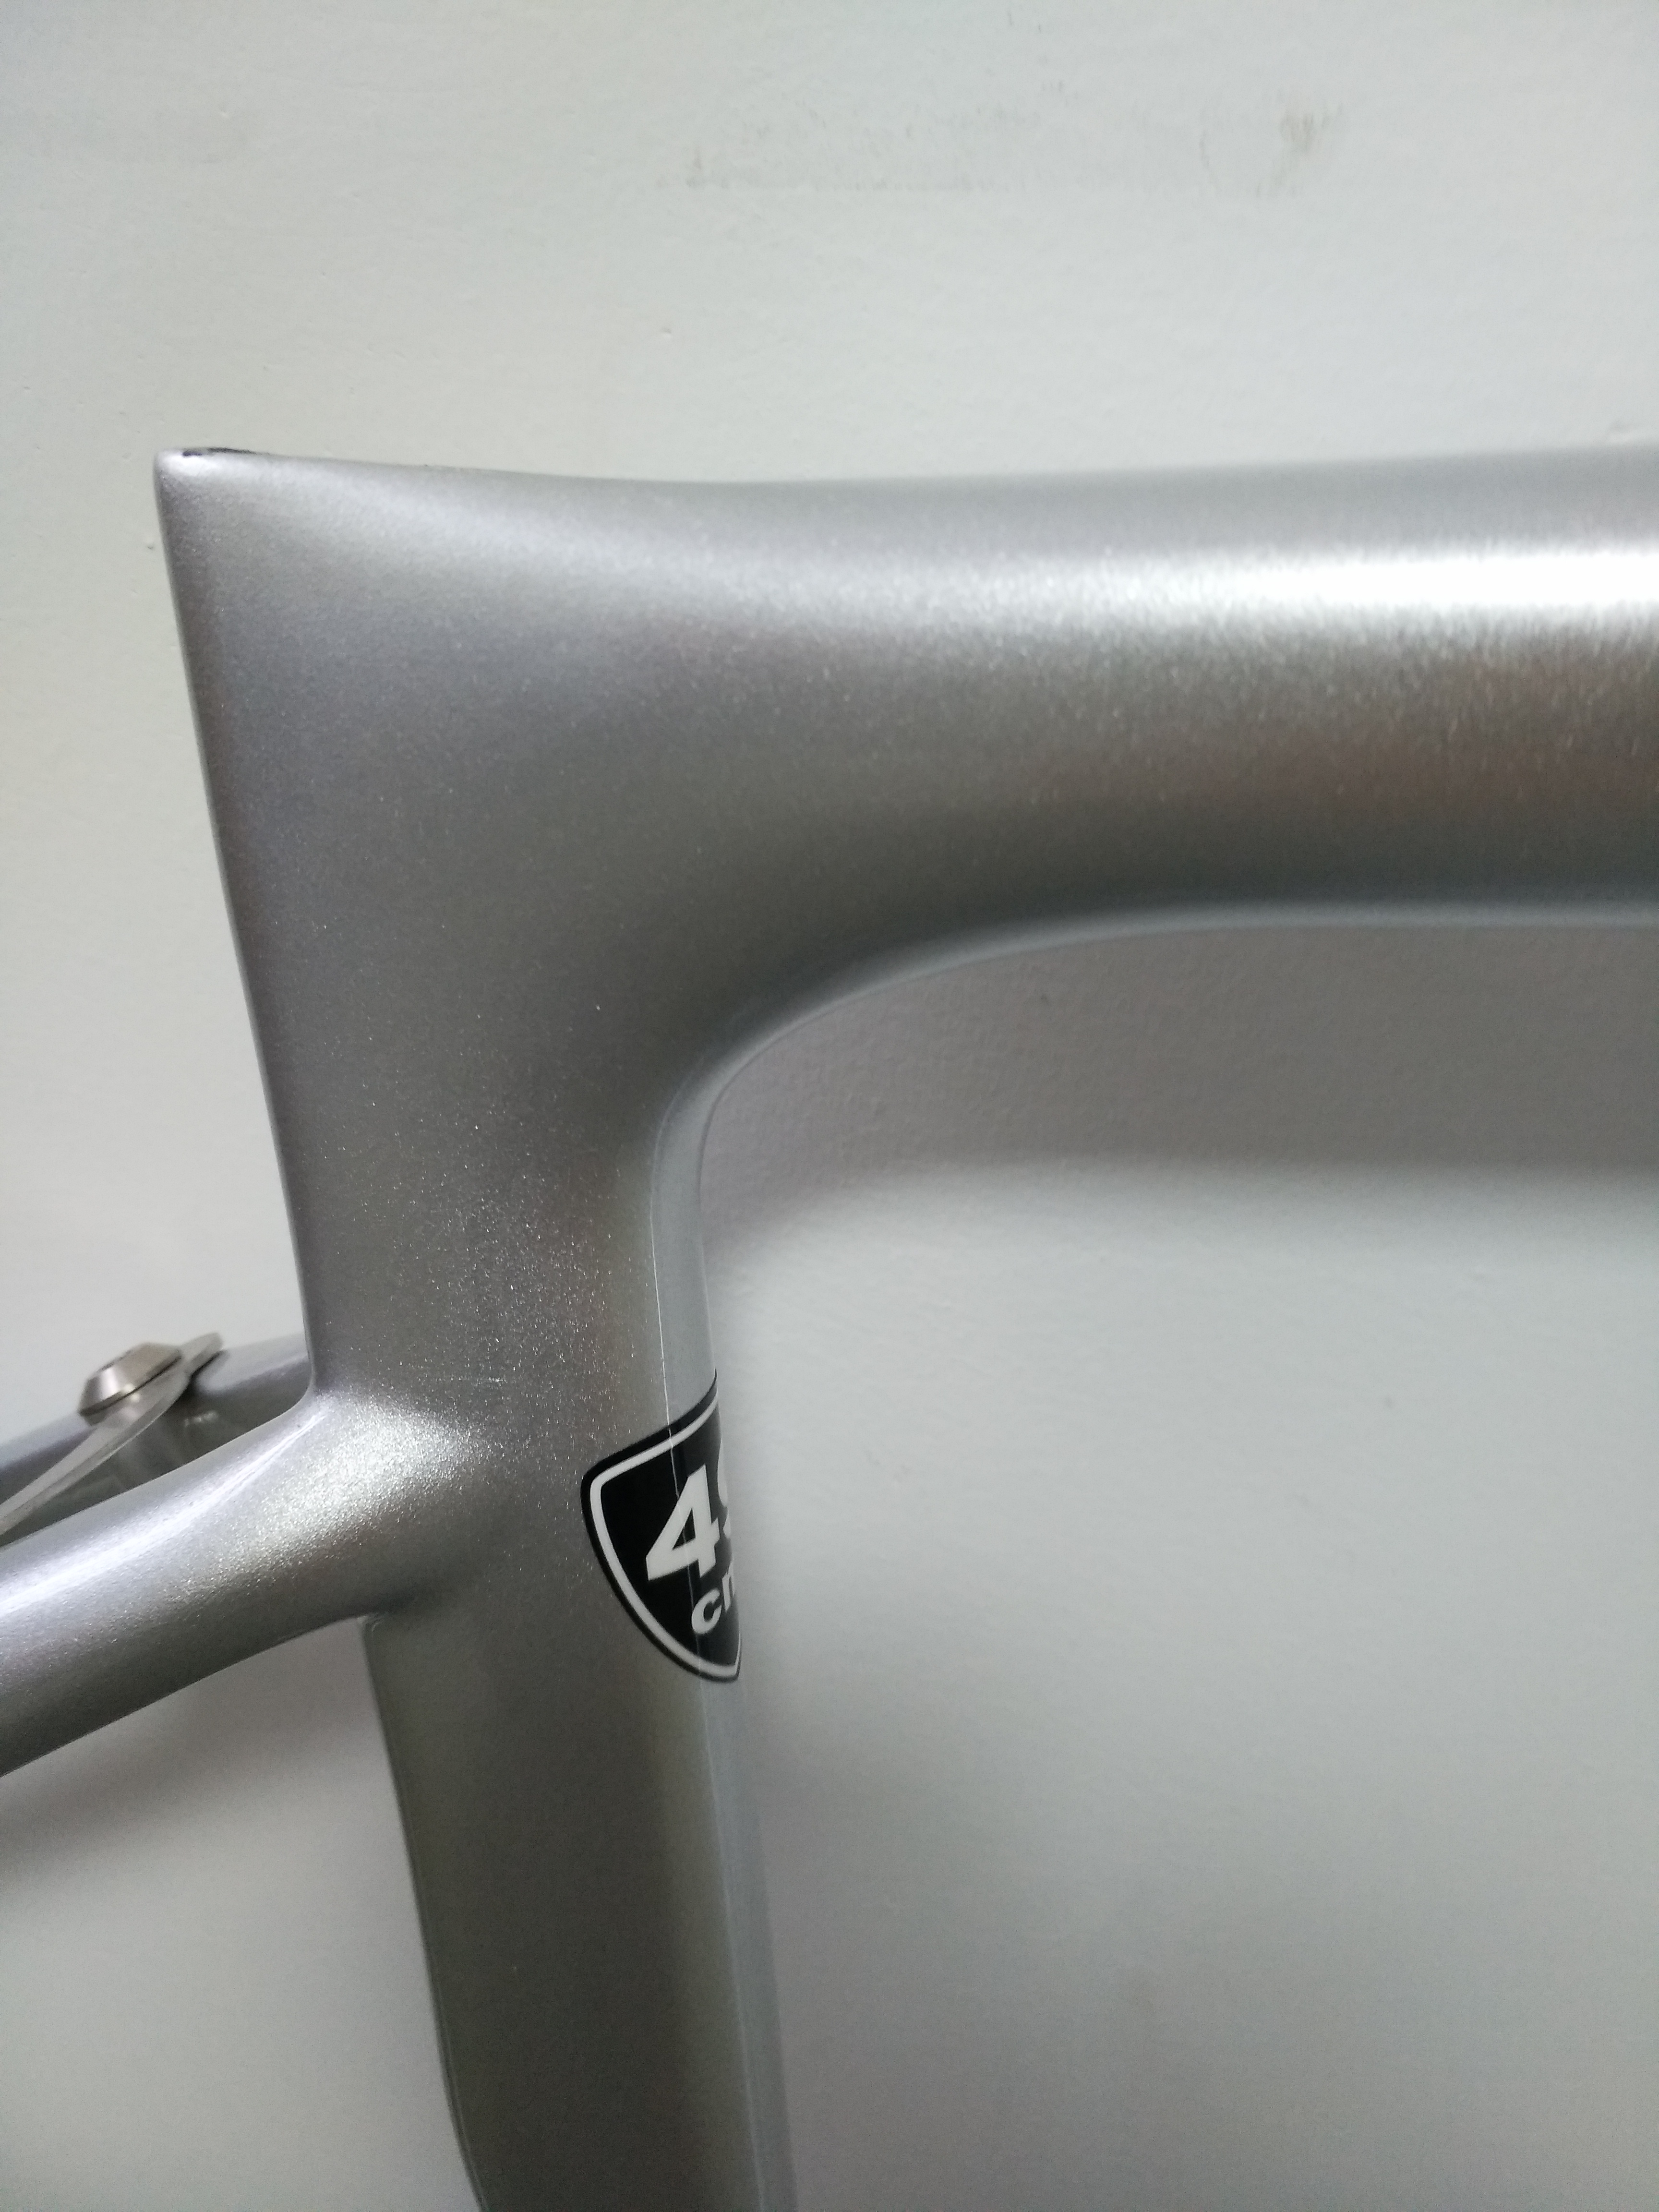 In Stock Carbon Road Frame Disc Brake Size 49cm Carbon Road Frame Bb30 Ud Glossy Carbon Road Frameset T1100 Factory Price